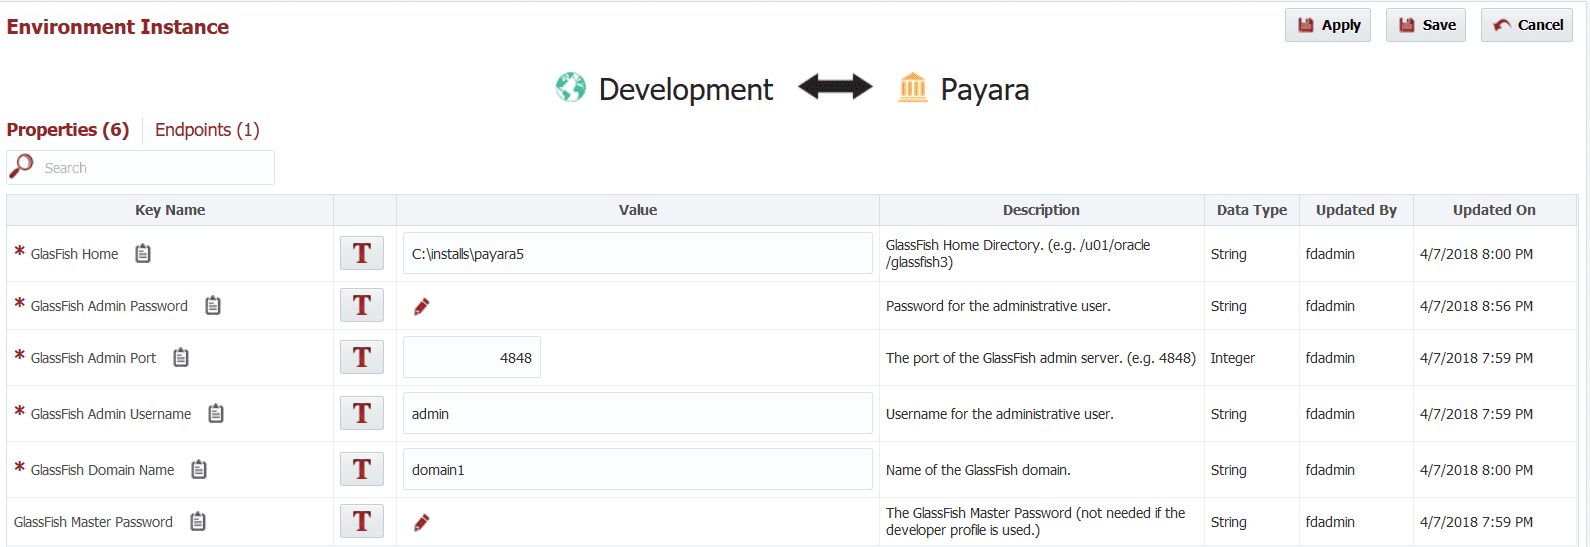 Automate Deployments to Payara Application Server - DZone DevOps